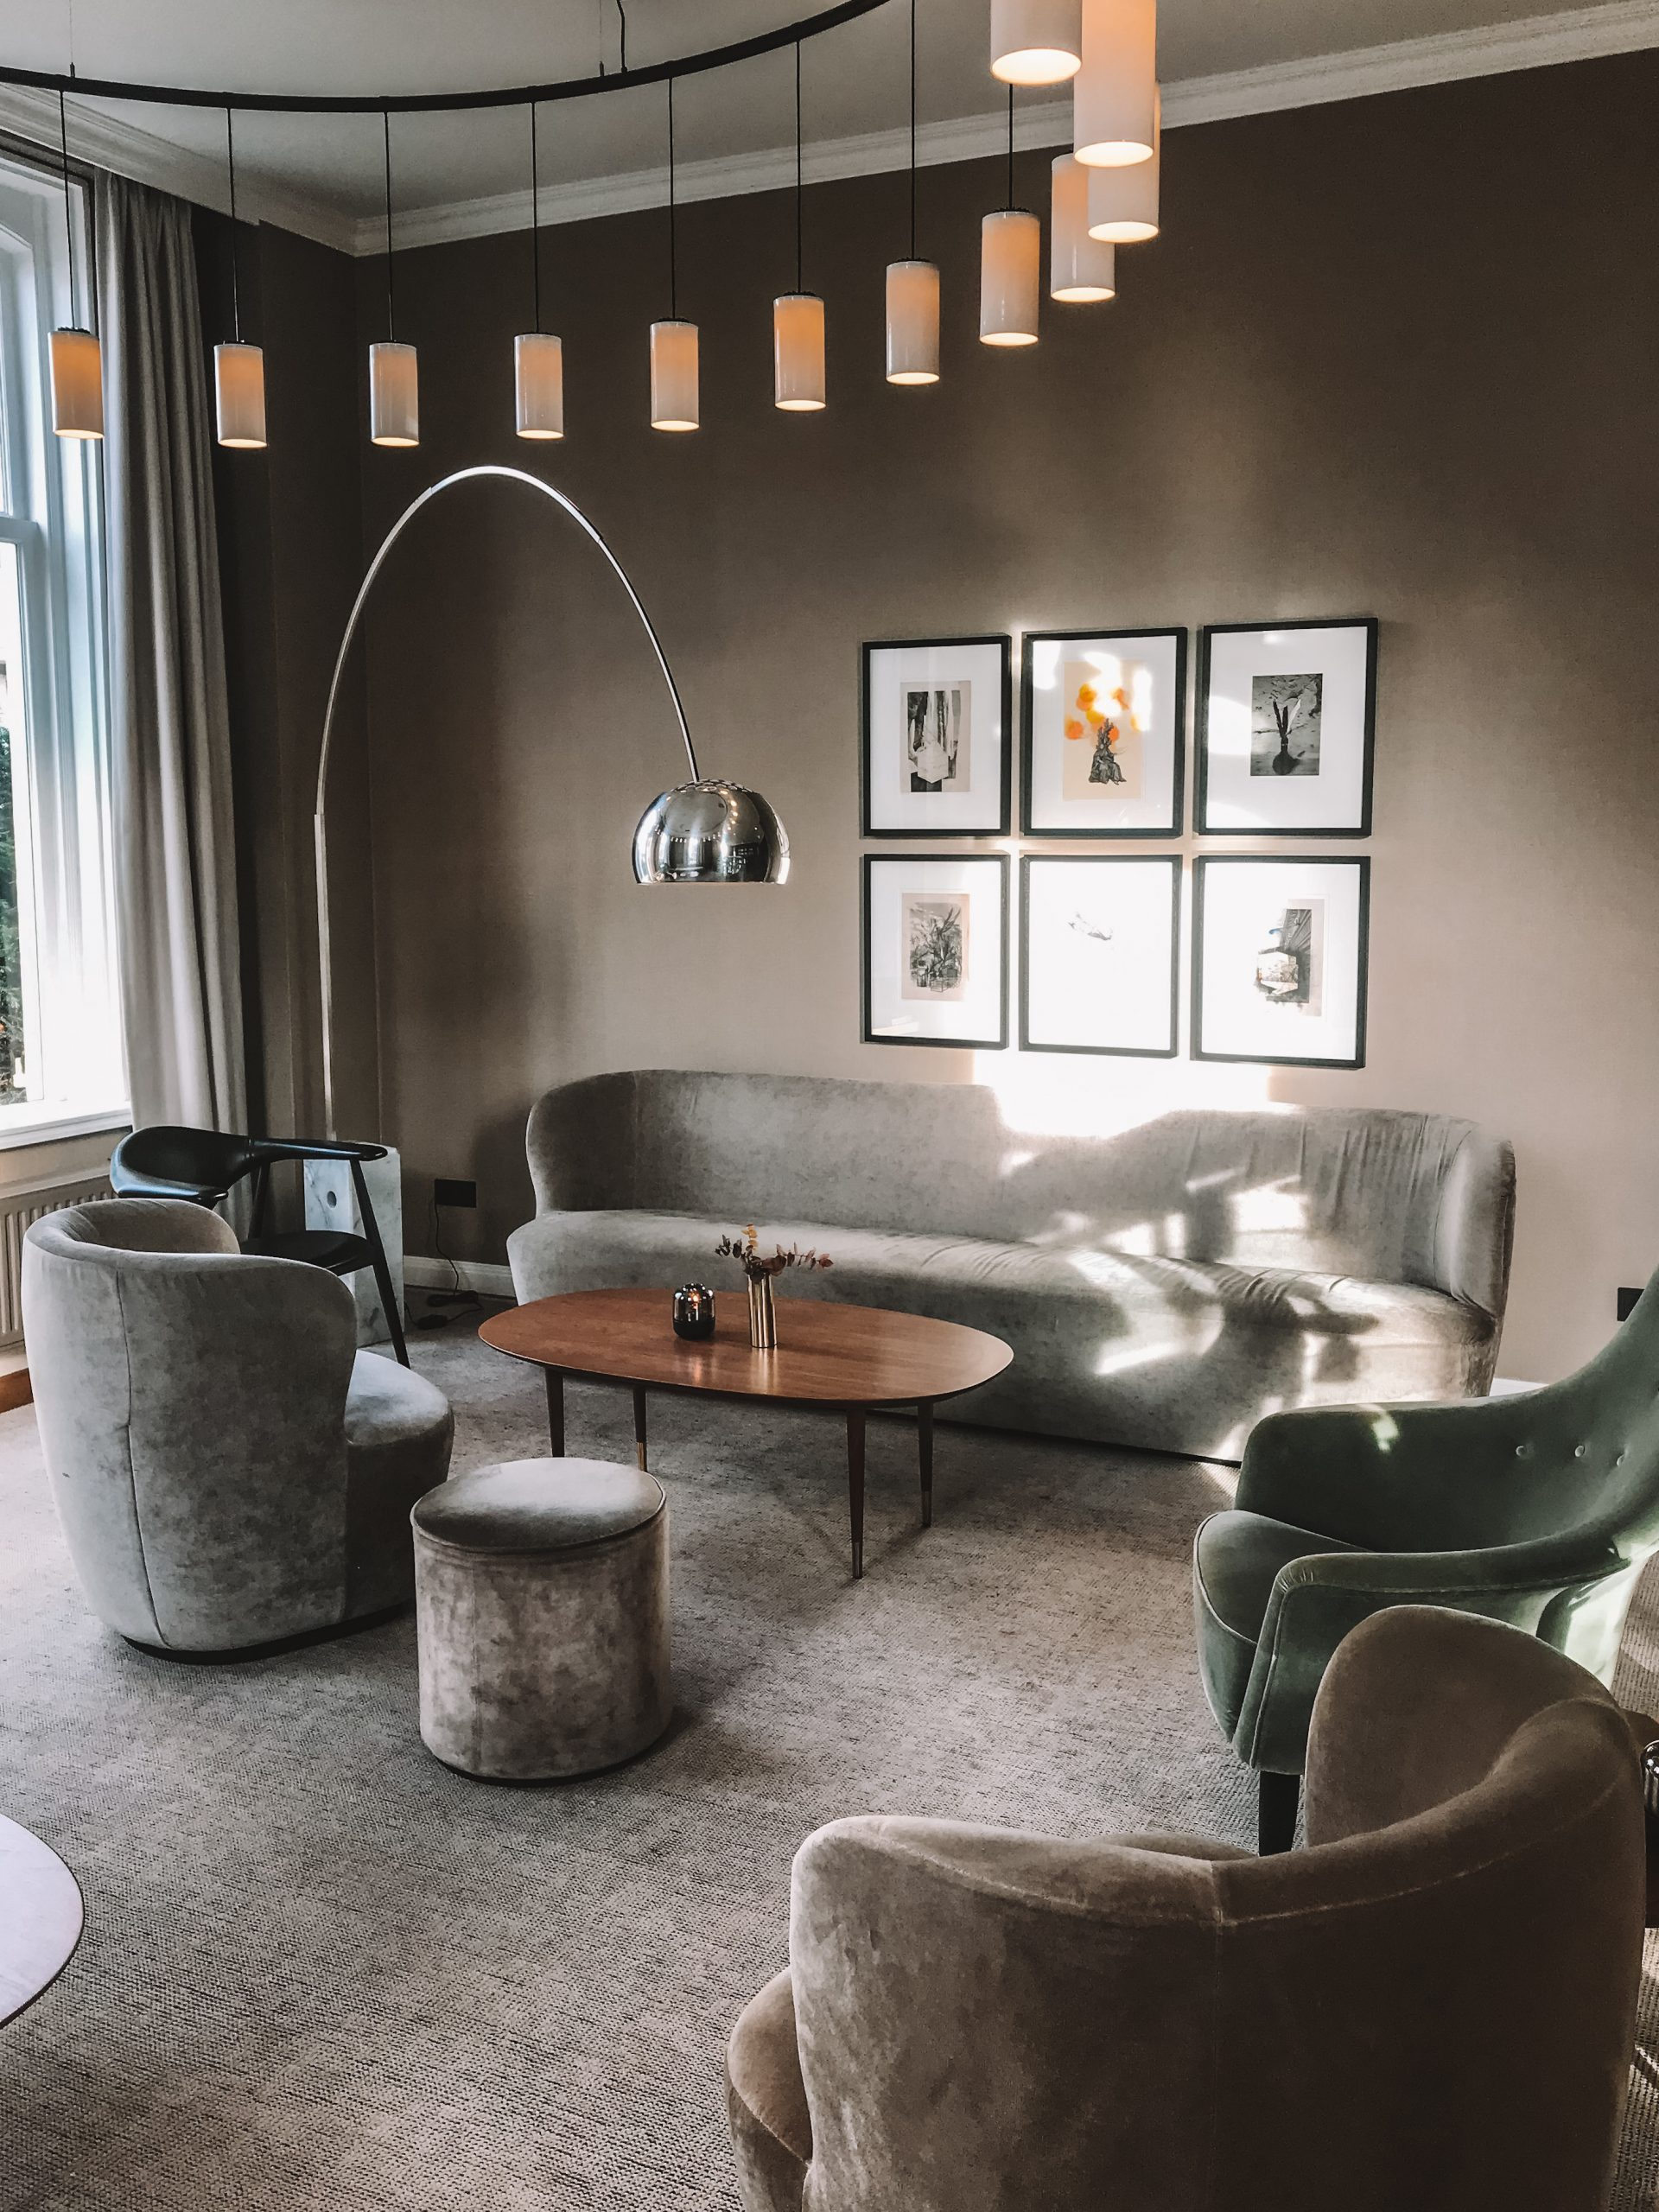 PILLOWS HOTEL ZWOLLE  TREAT YOURSELF TO A STAYCATION